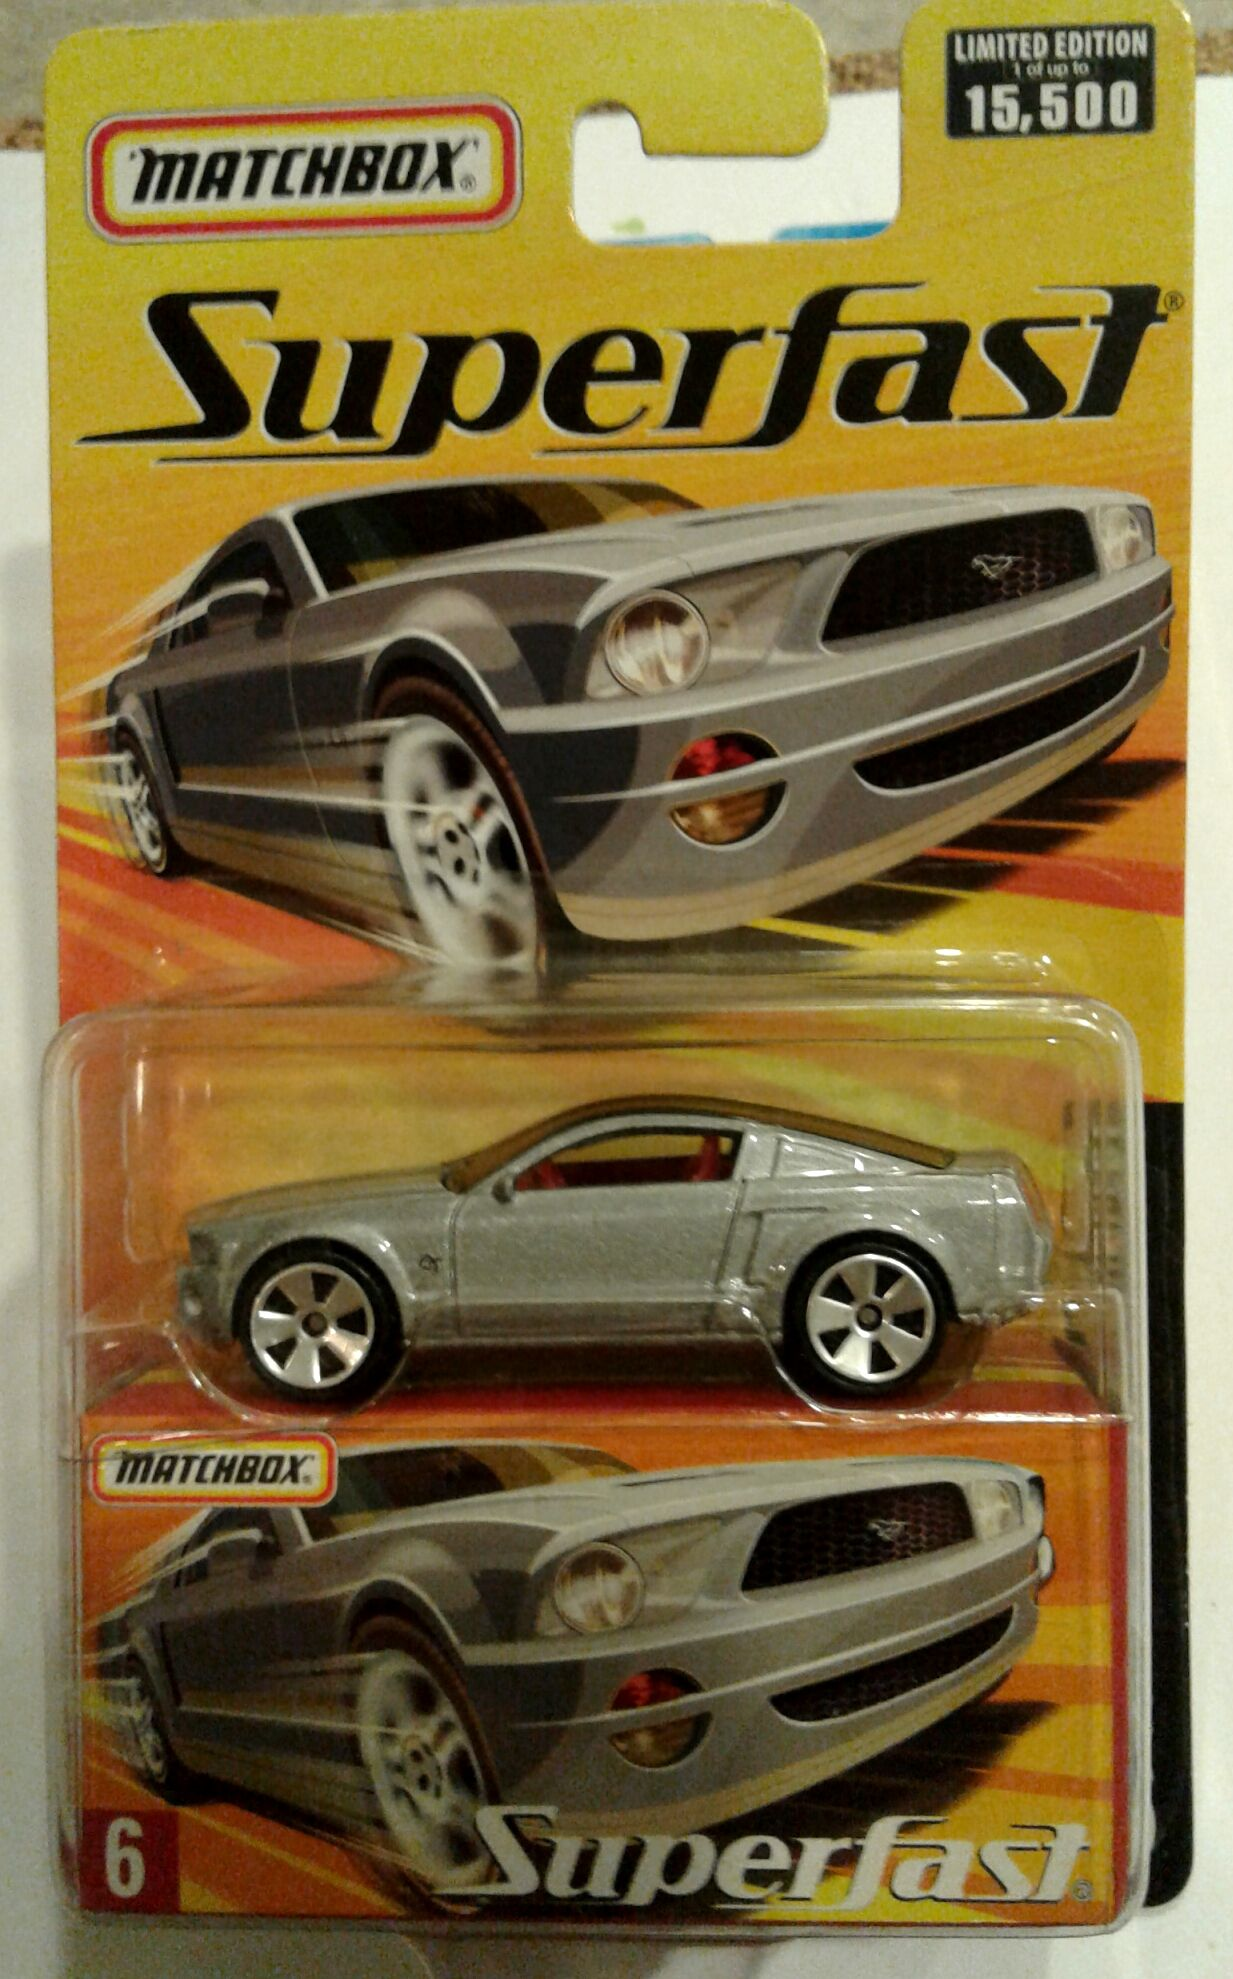 Matchbox Superfast Ford Mustang GT Concept Car *VHTF* PRICE: $8.00 ...